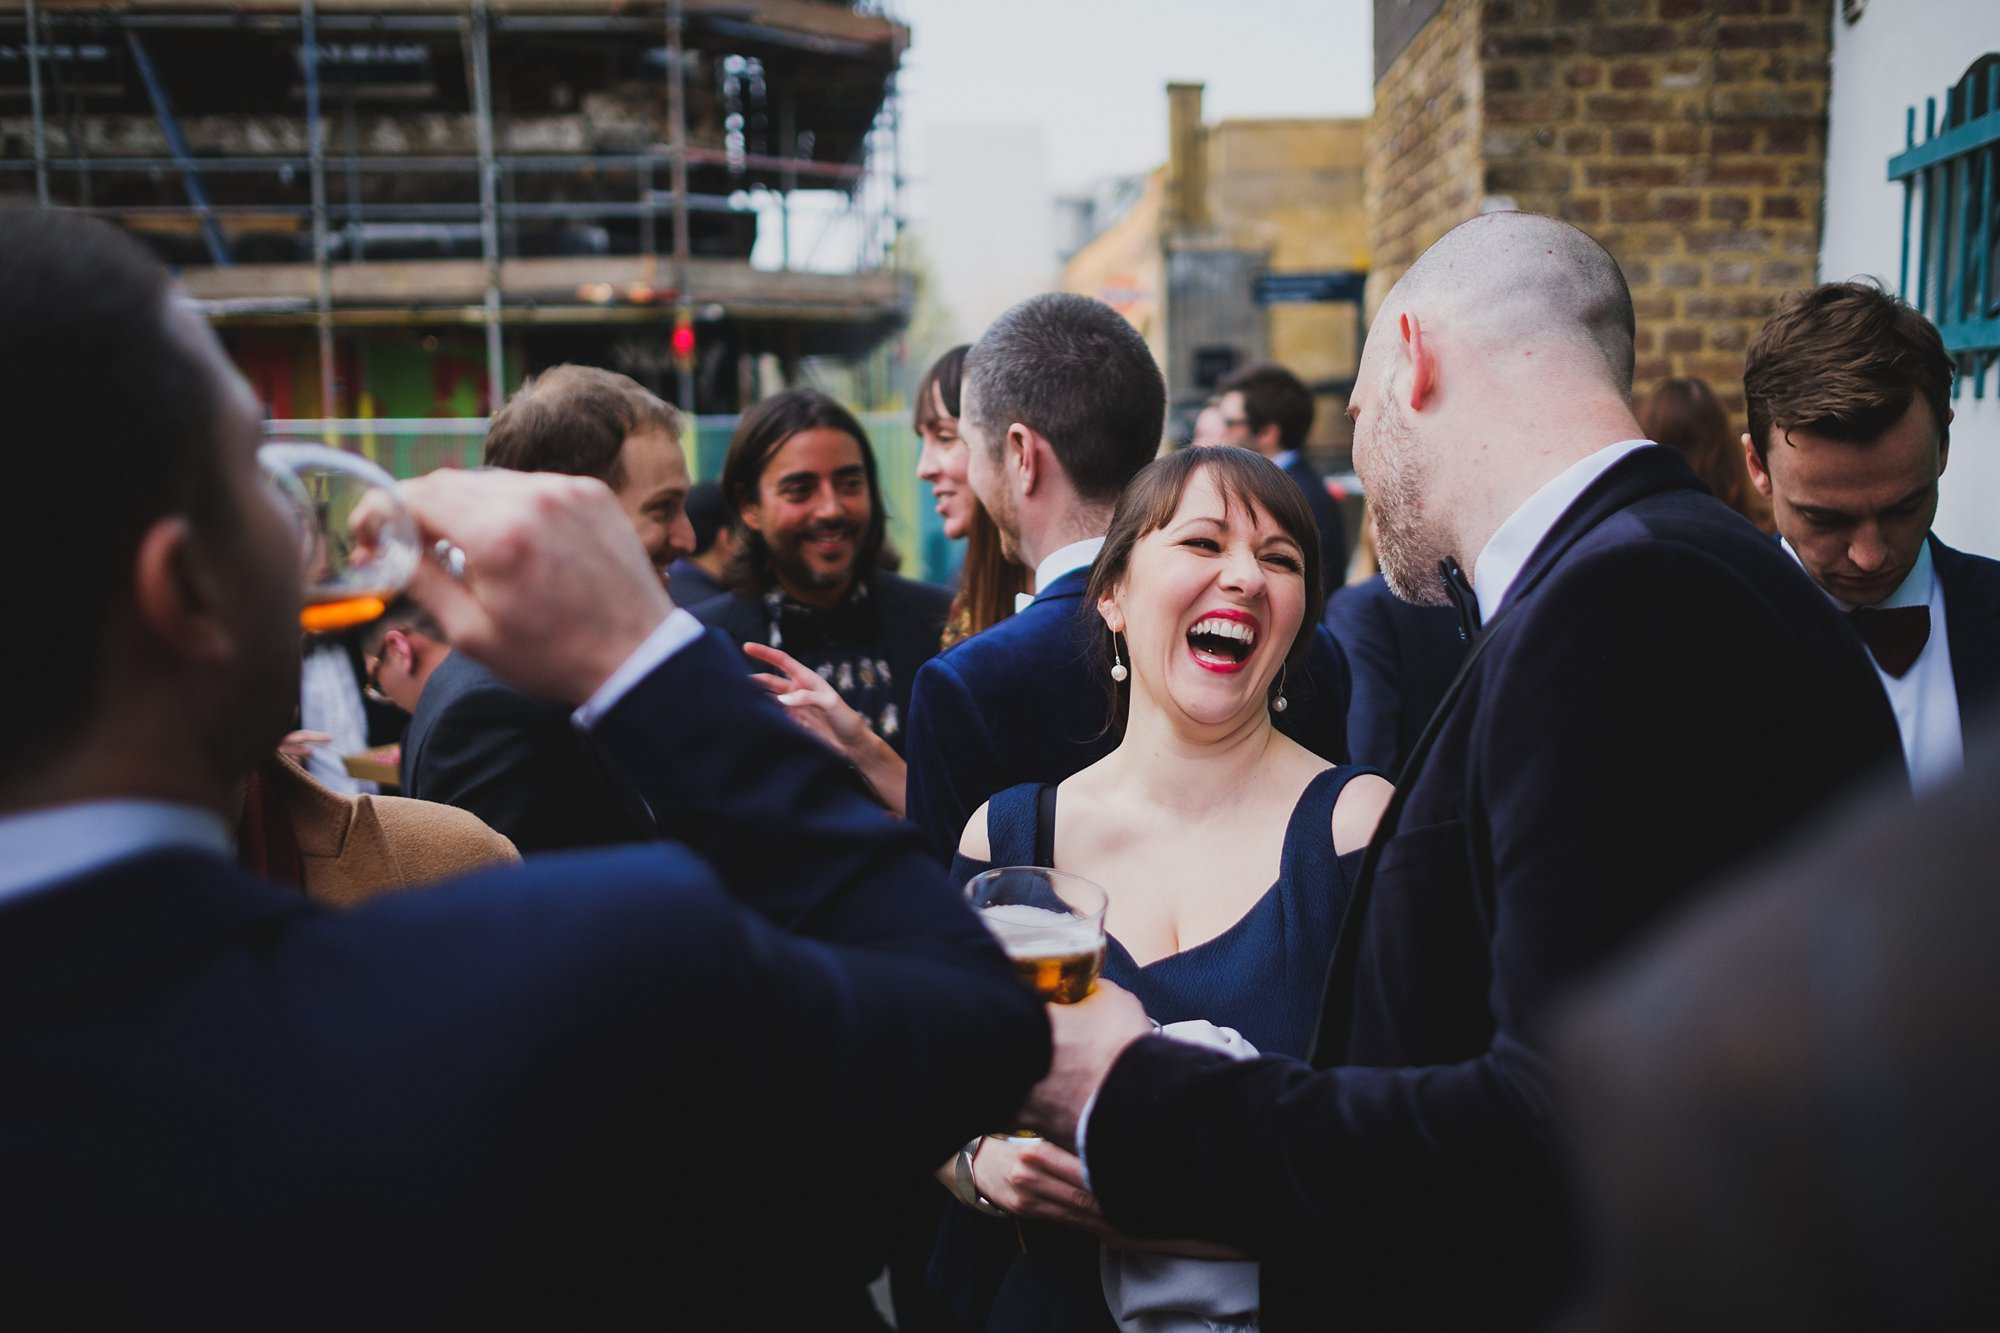 london party photographer hoxton arches 013 - An Elopement Reception at Hoxton Arches